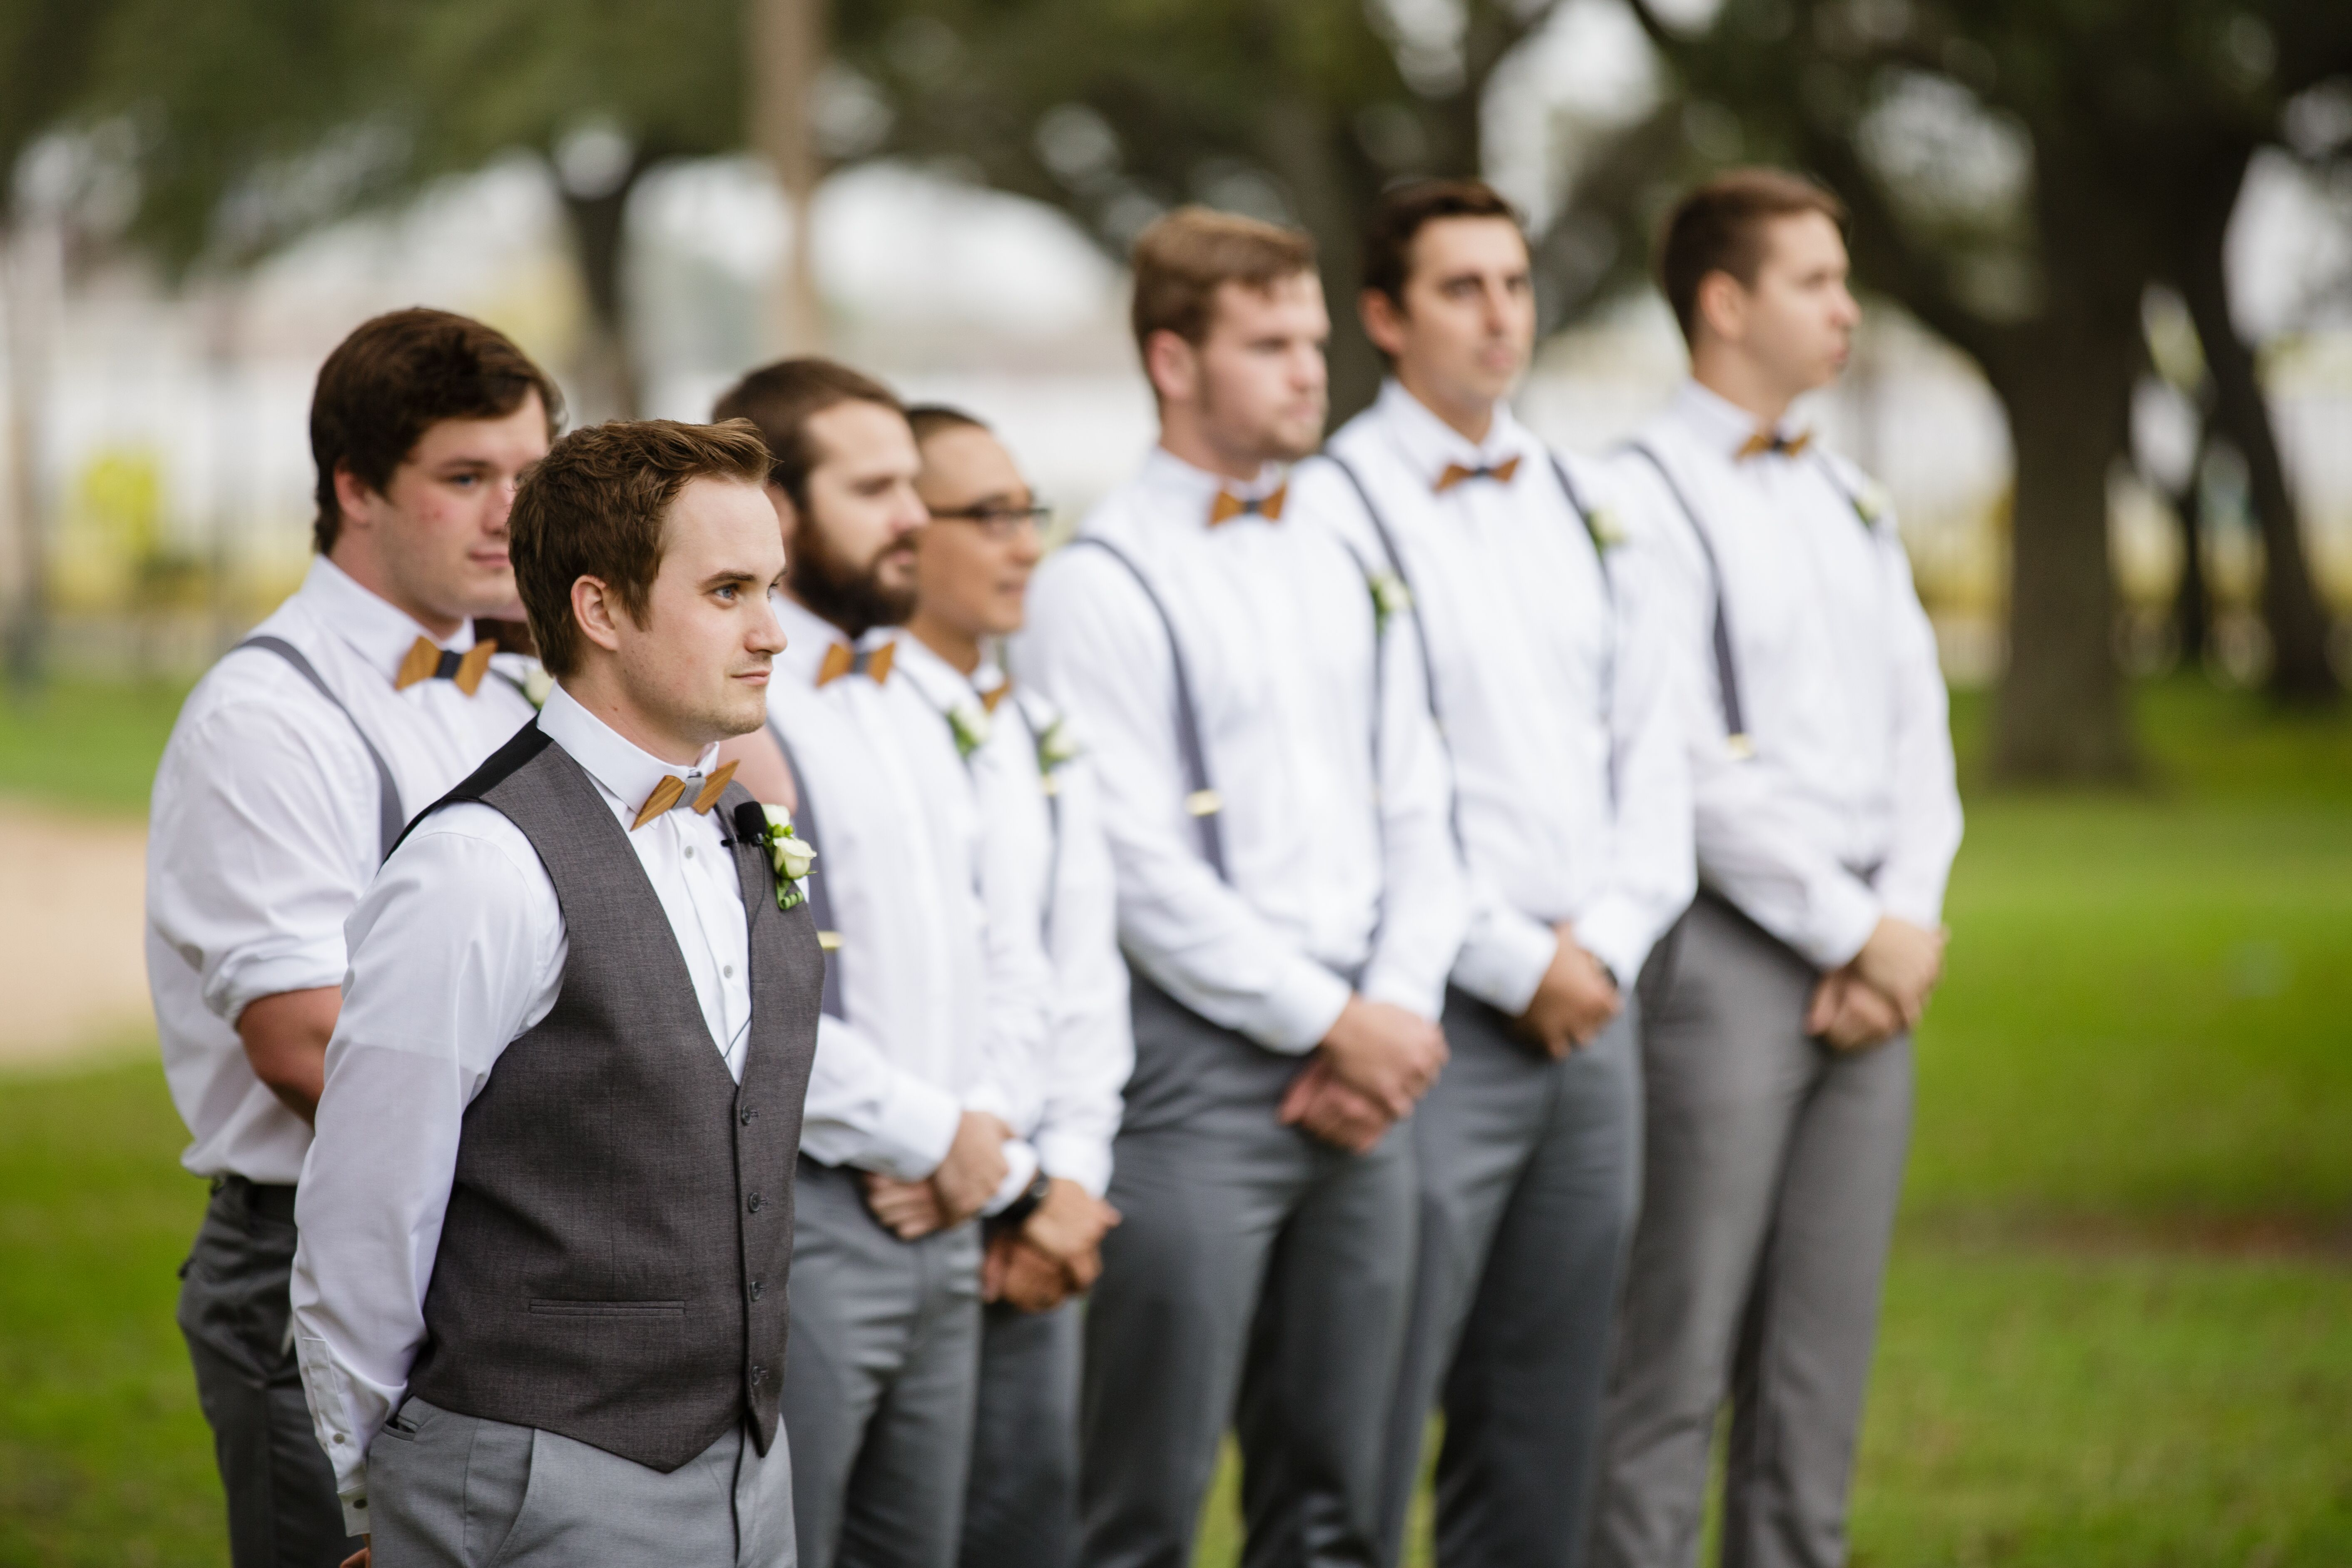 Casual Groomsmen Attire Wooden Bow Ties